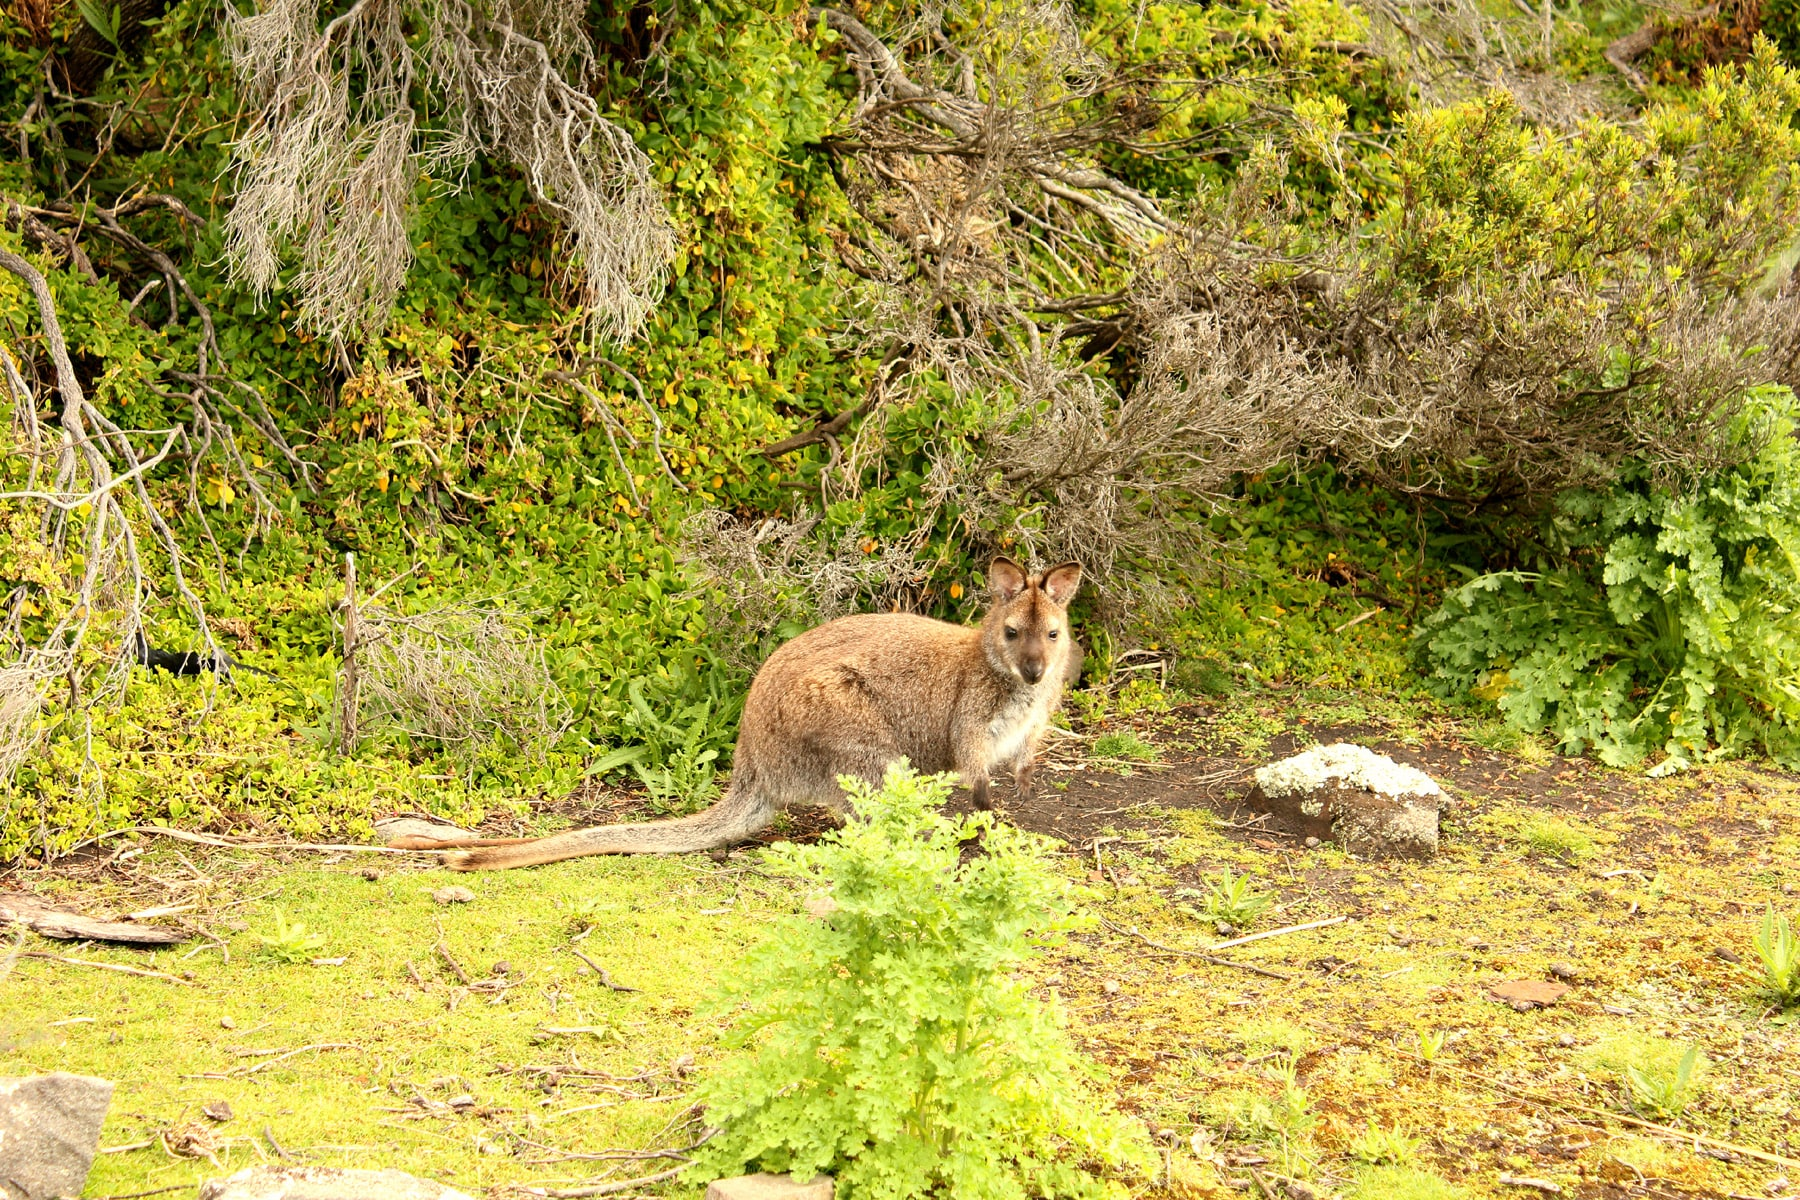 Though we were rushing to catch the last ferry back, but how can you miss an opportunity to snap pictures of wild wallabies!